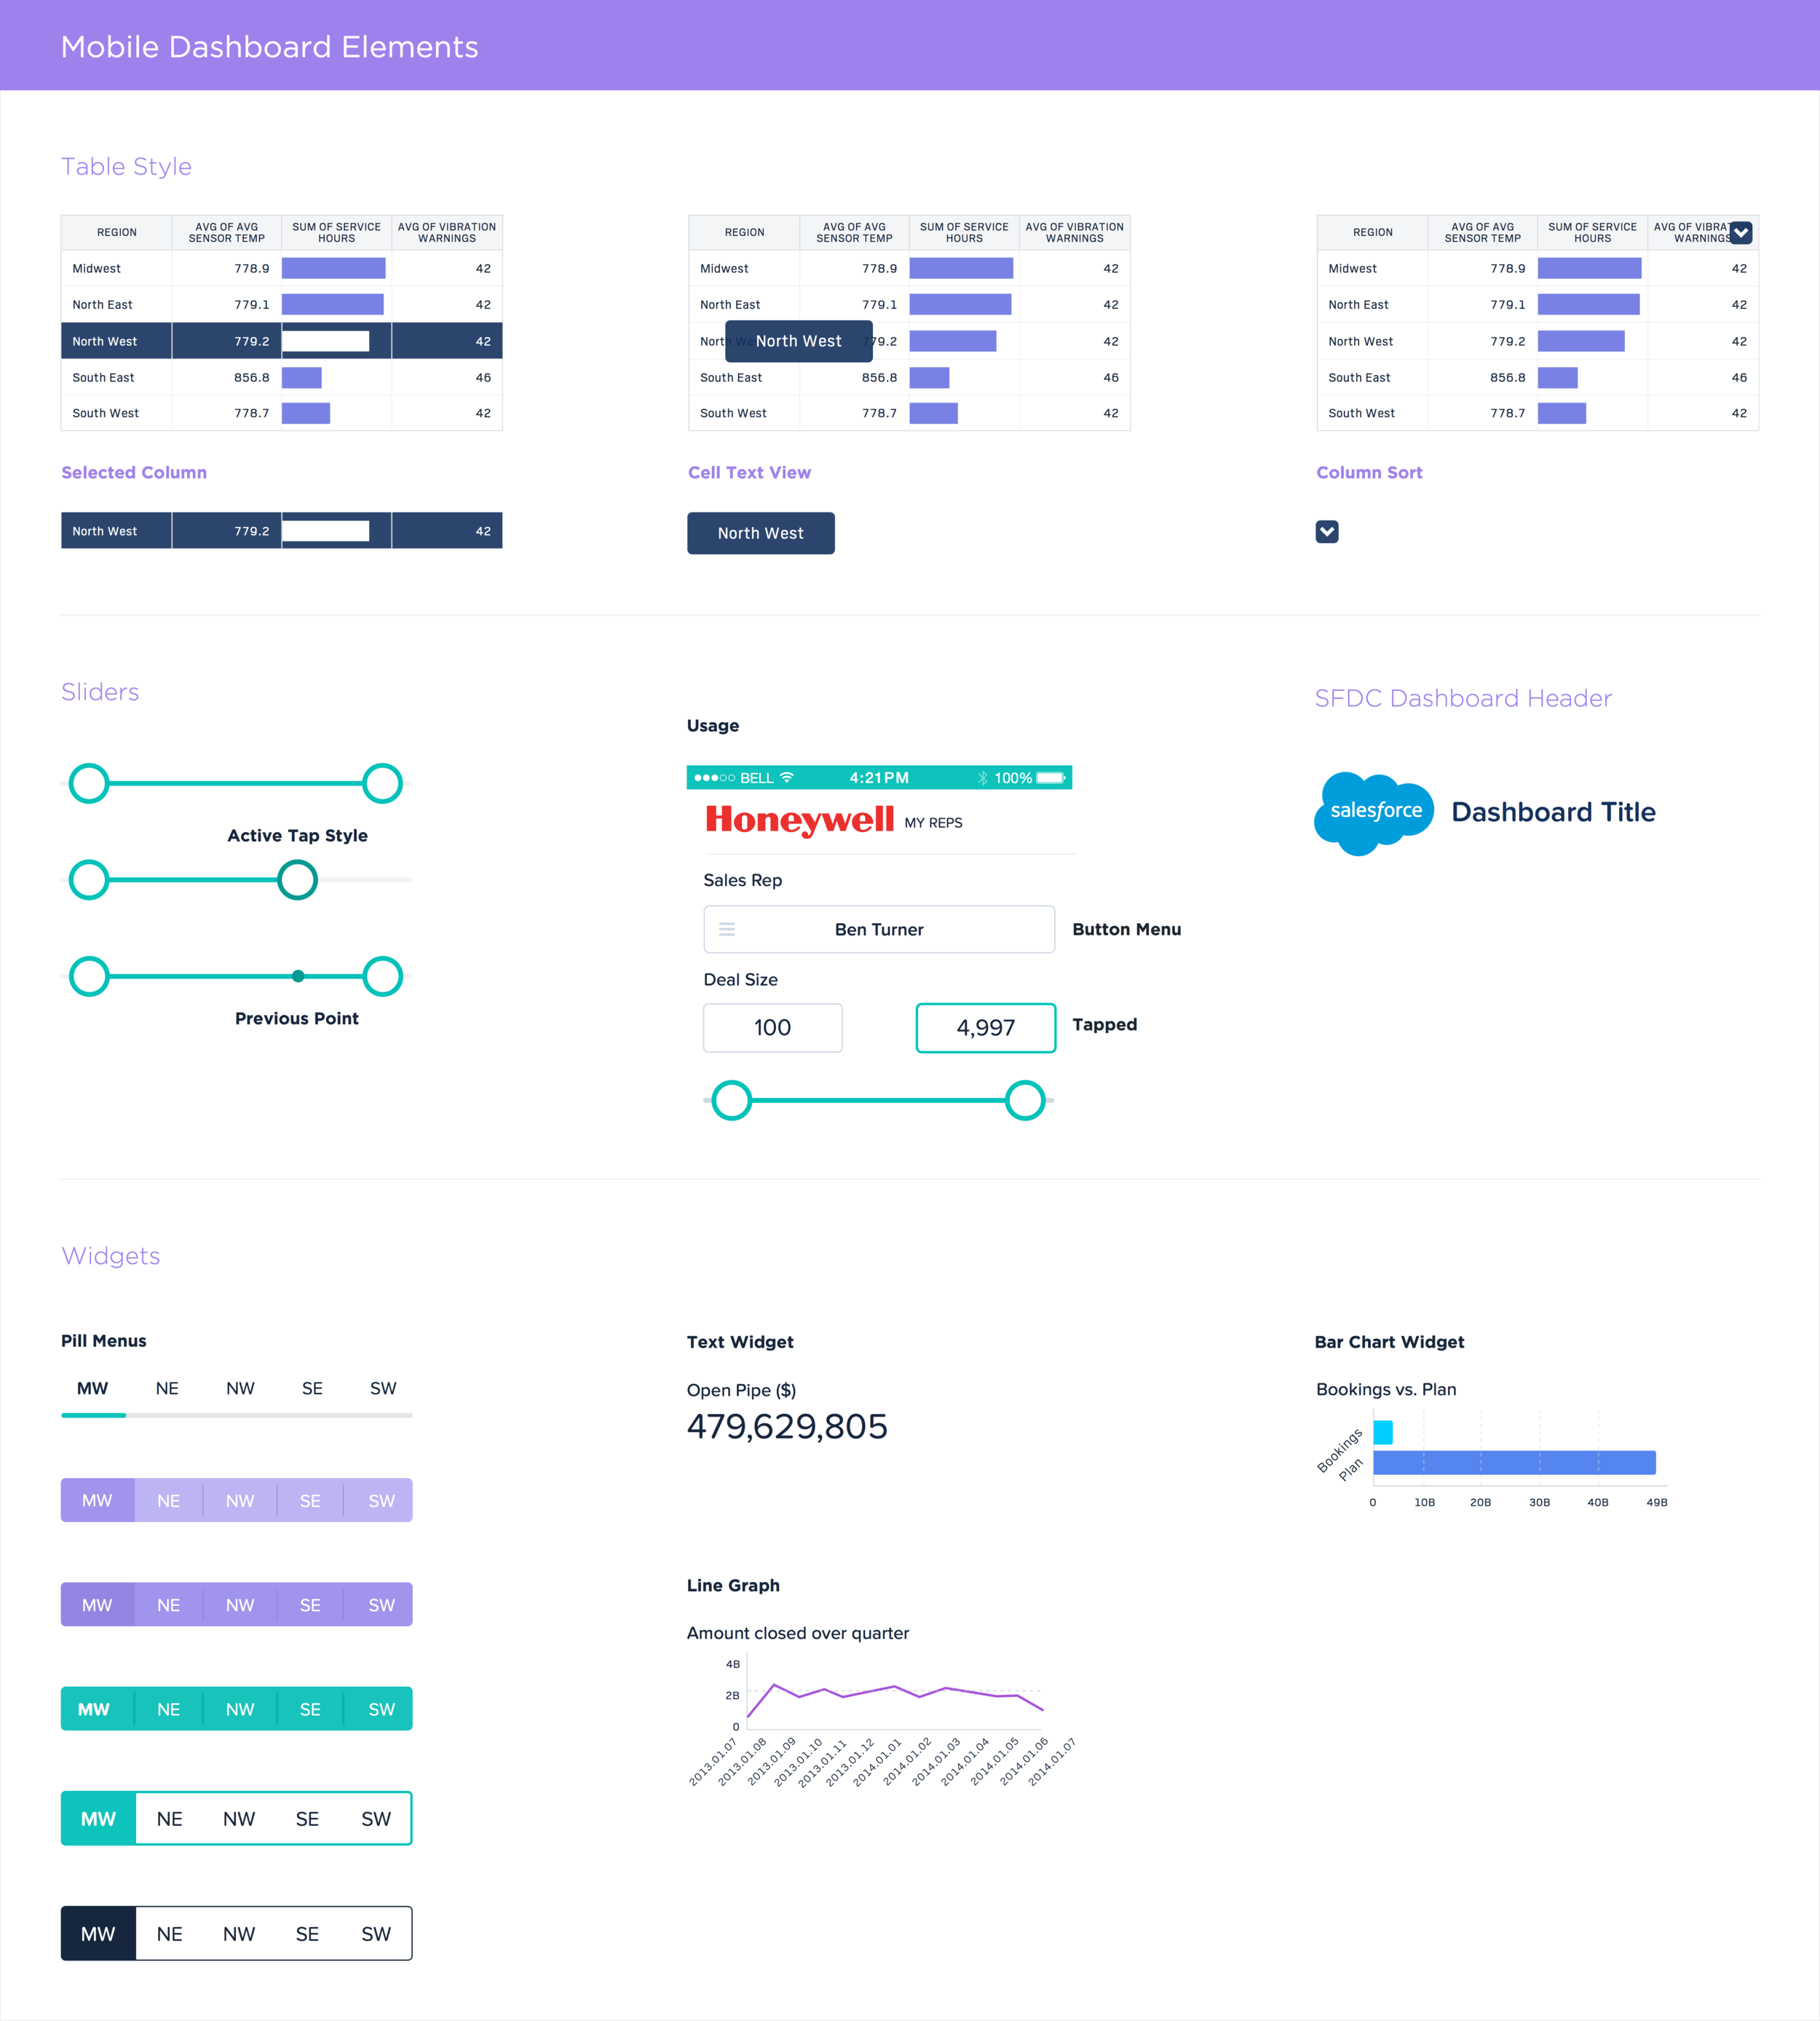 Mobile Dashboard Elements@2x.png